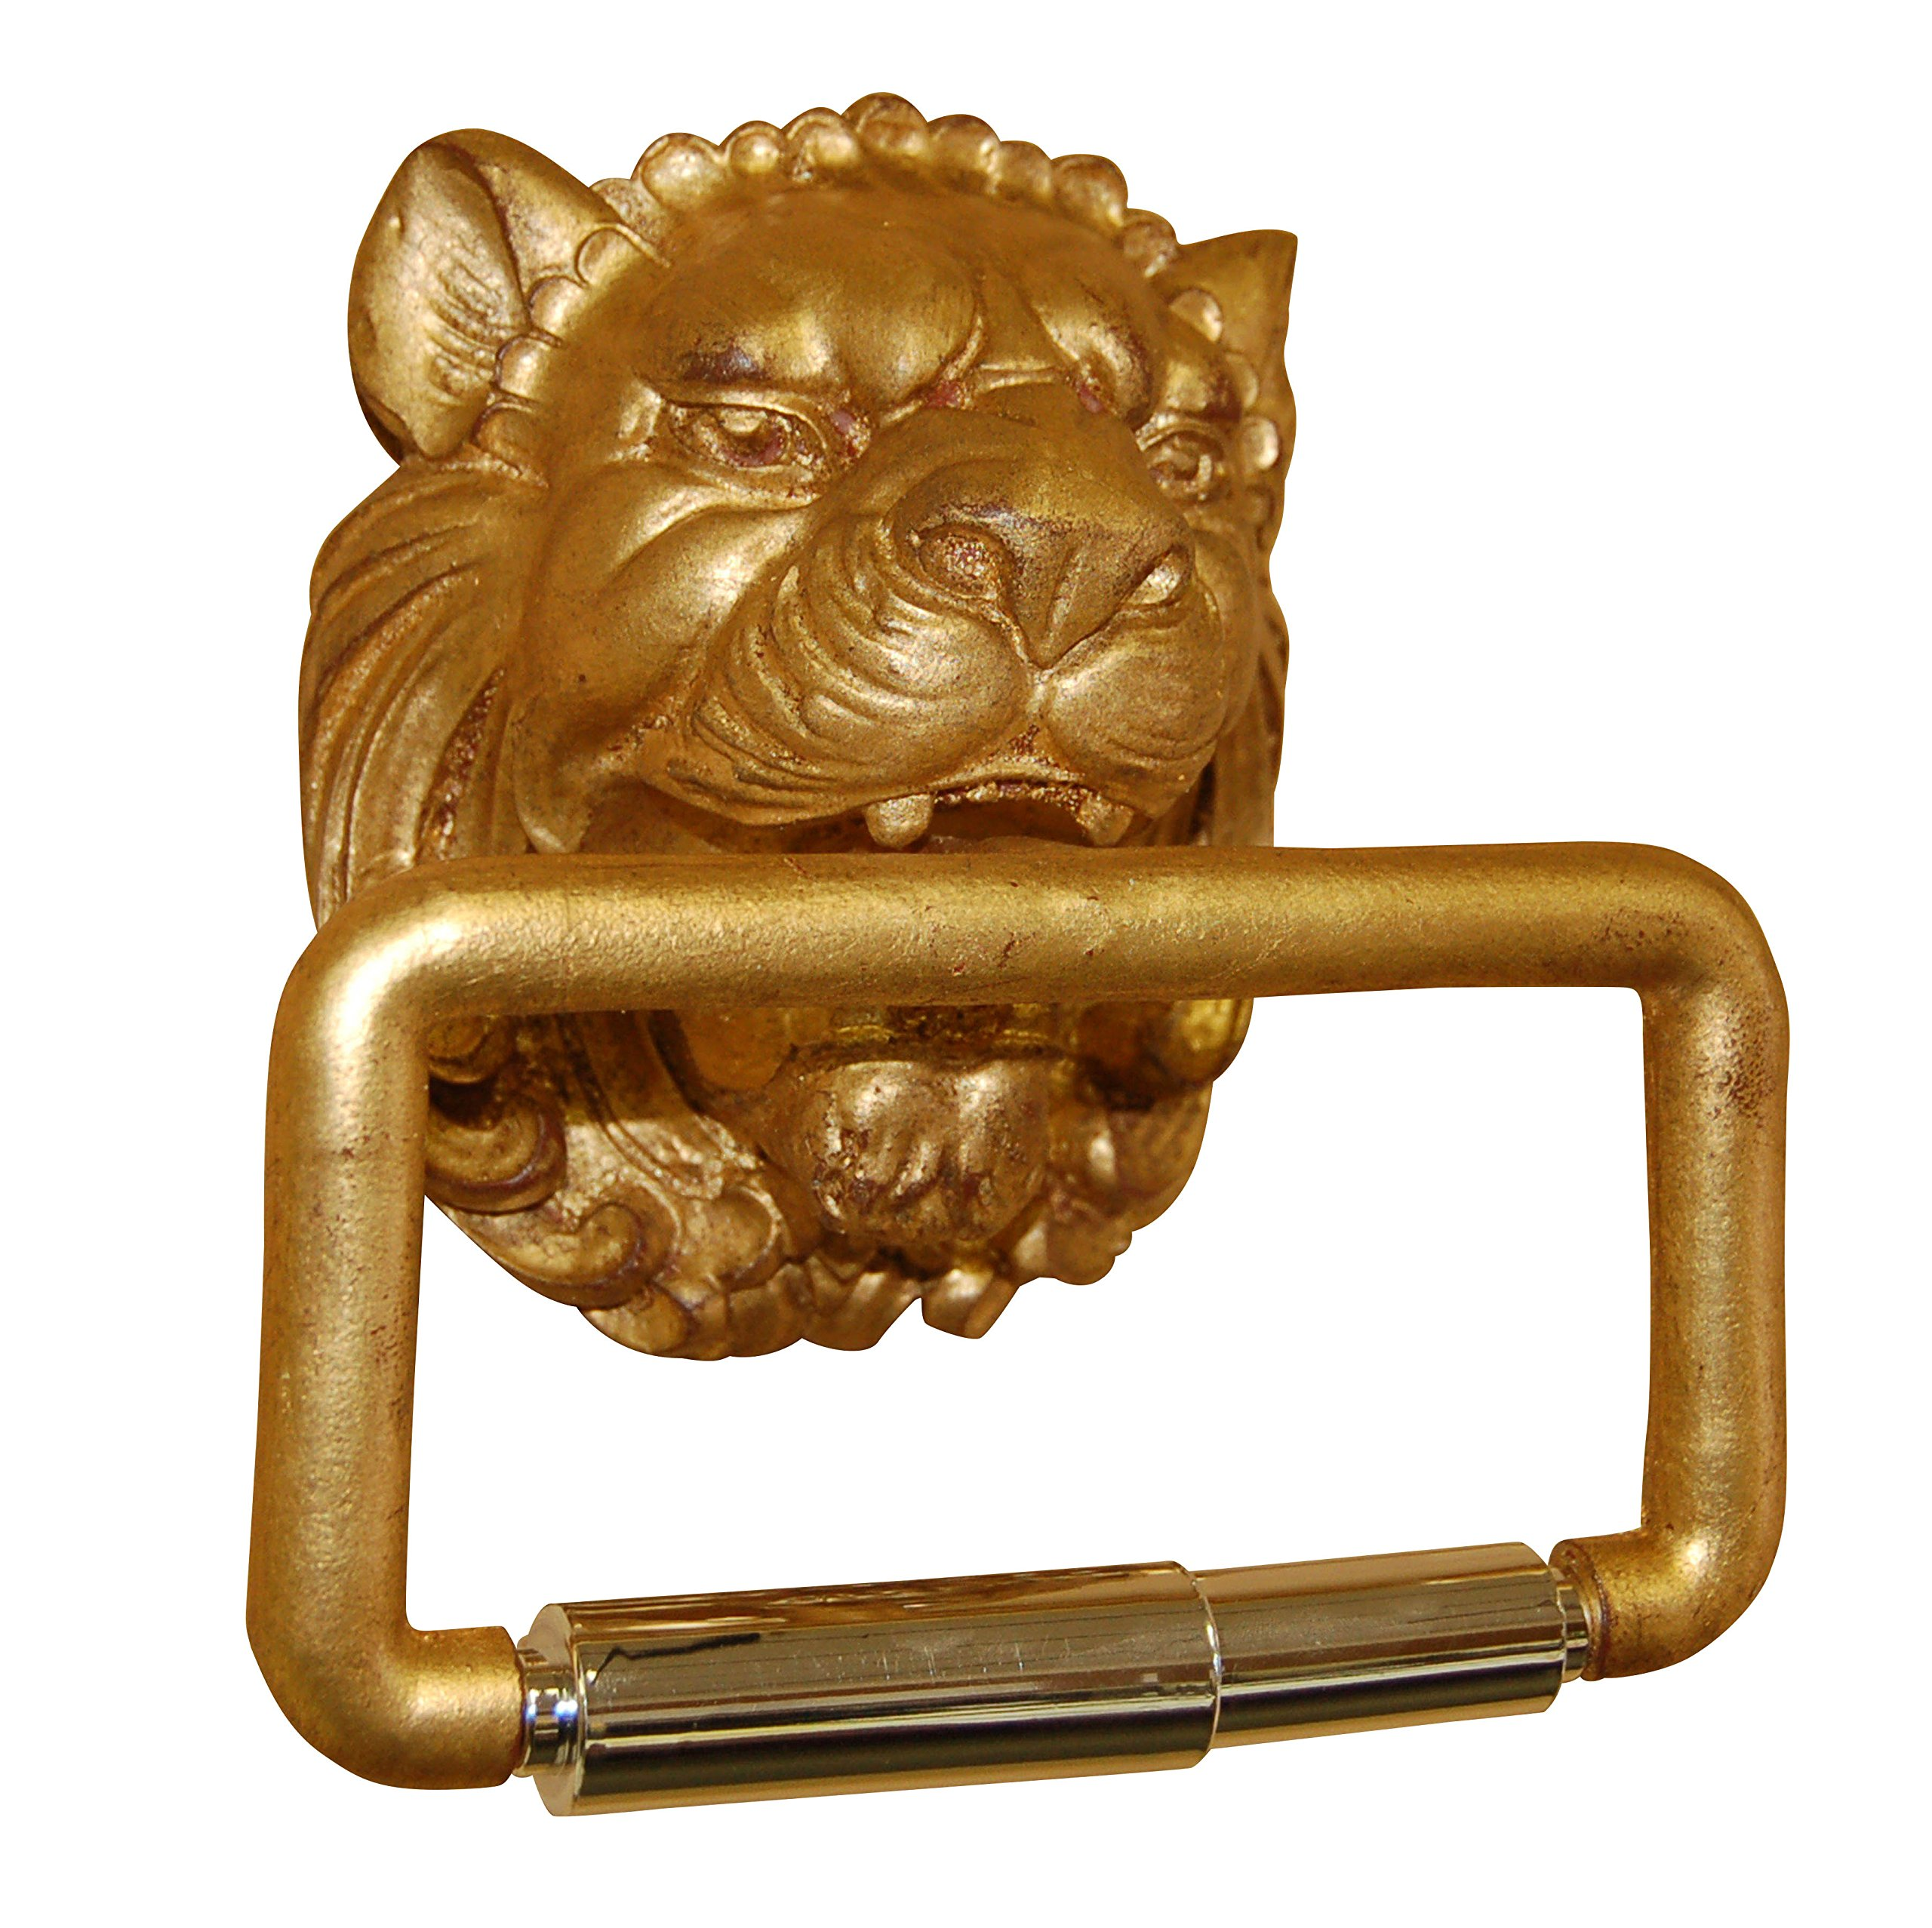 Hickory Manor House Lion Head Toilet Paper Holder, Gold Leaf by Hickory Manor House